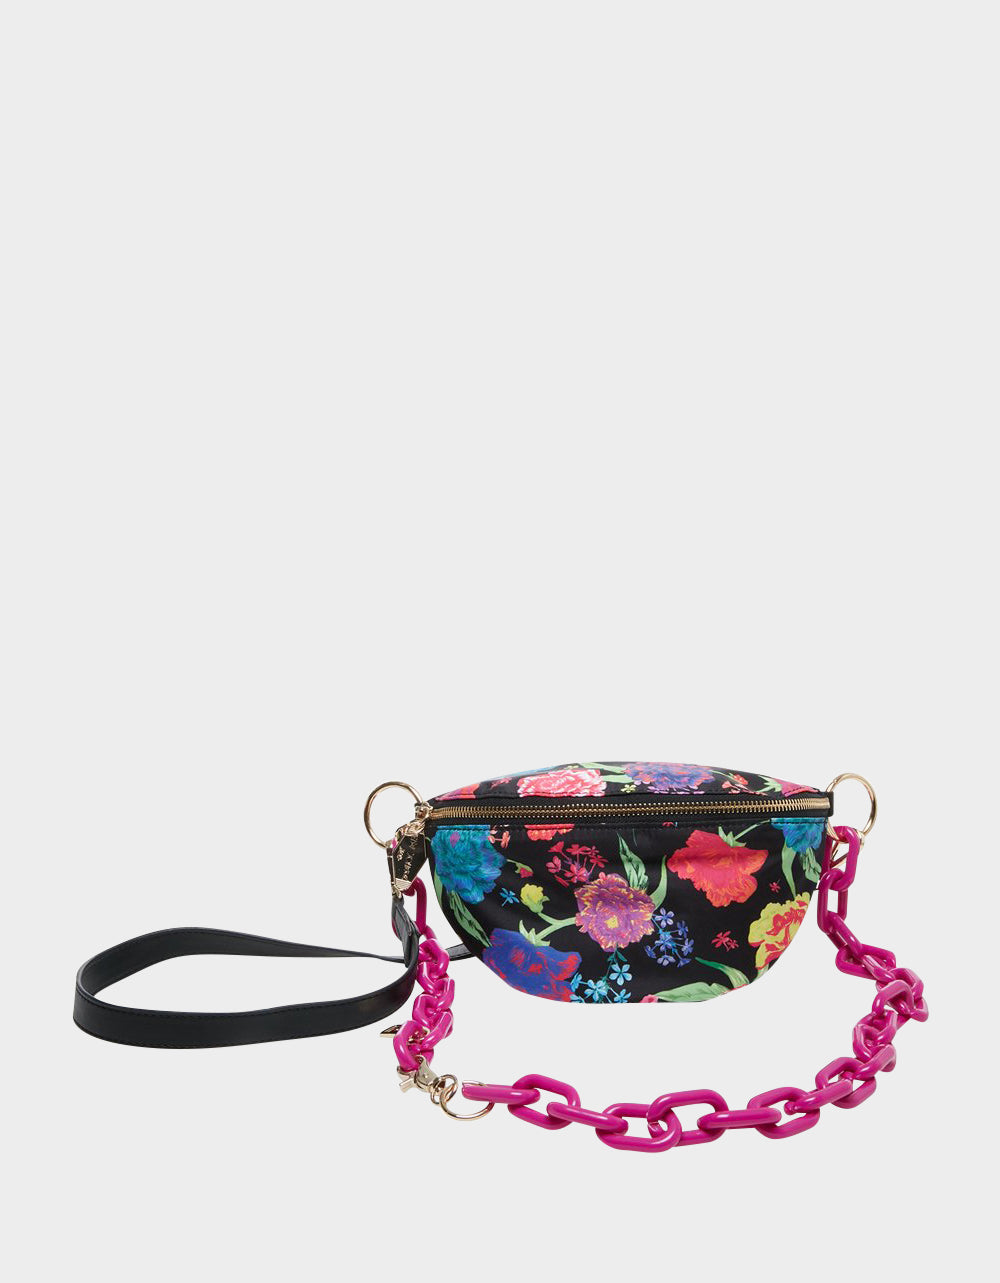 BUMMIN AROUND NYLON FANNY PACK BLACK MULTI - HANDBAGS - Betsey Johnson